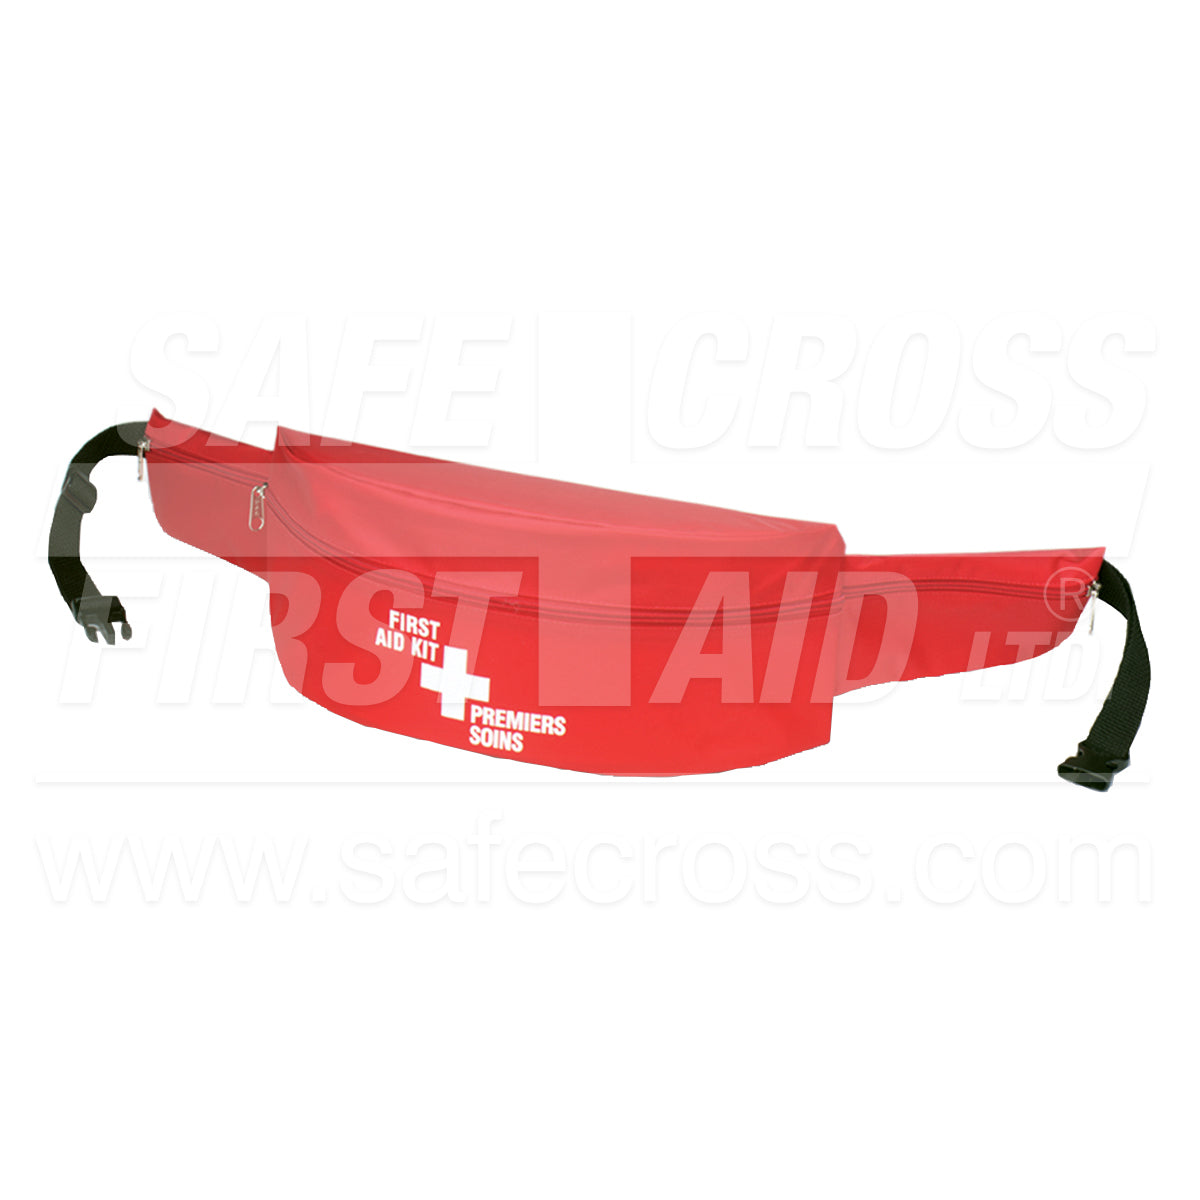 Hikers' Waist Pack